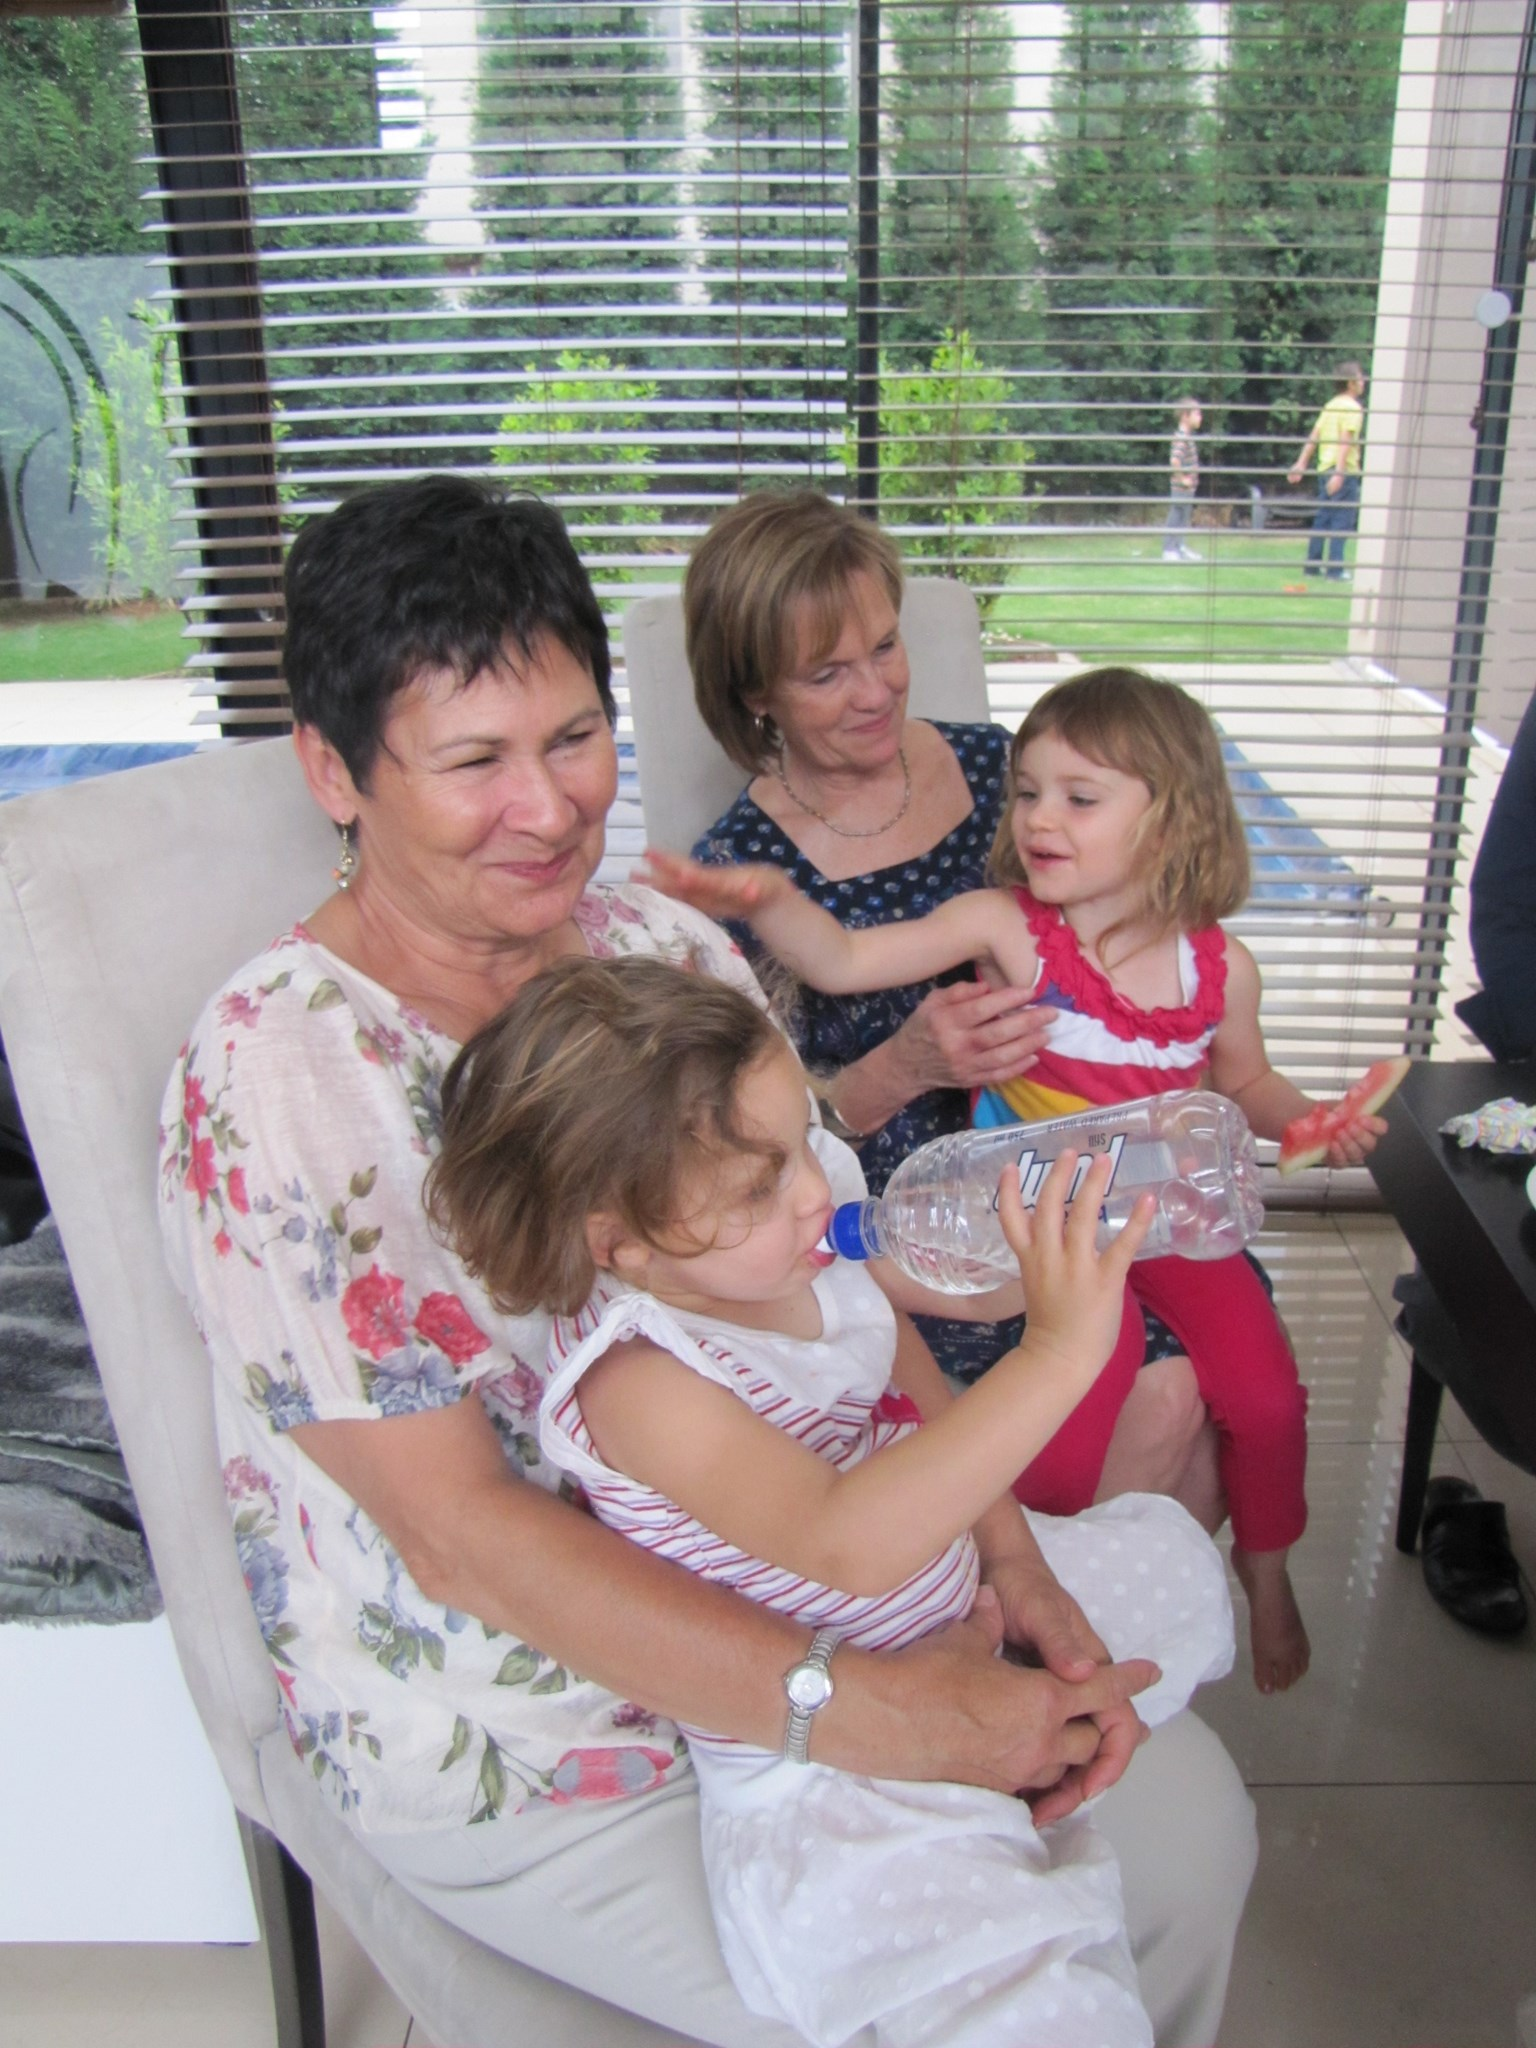 2012 At Melanie´s birthday with Chrisna and granddaughter